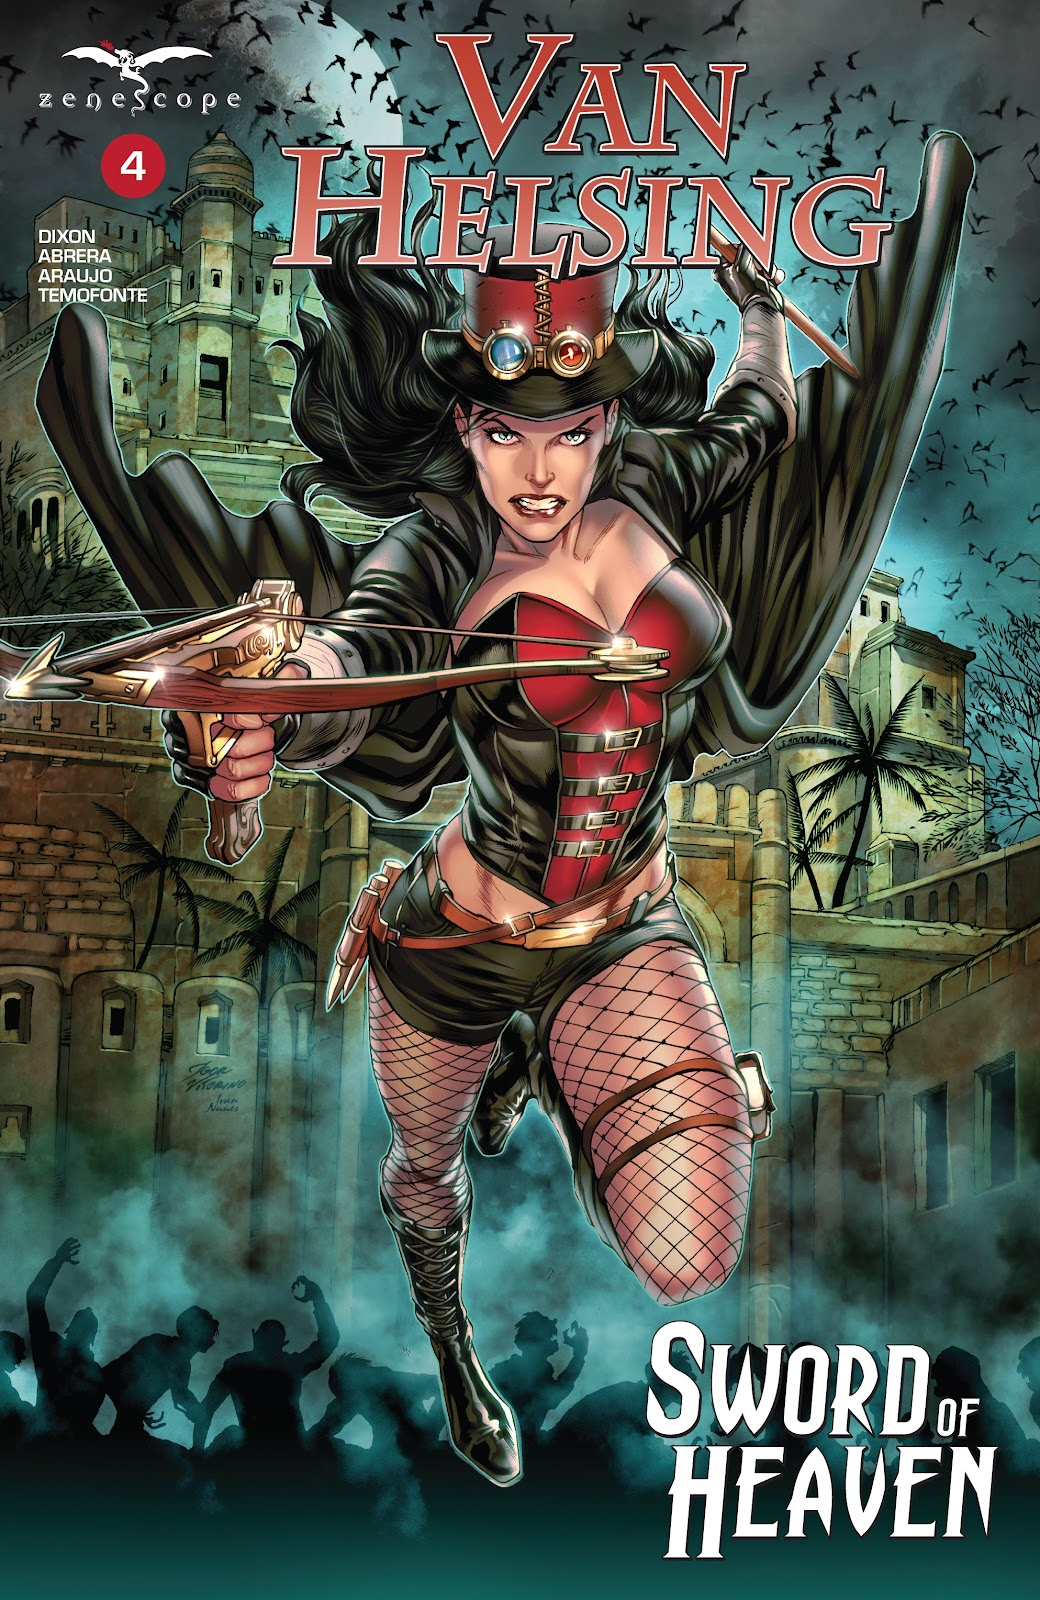 Read online Van Helsing: Sword of Heaven comic -  Issue #4 - 1